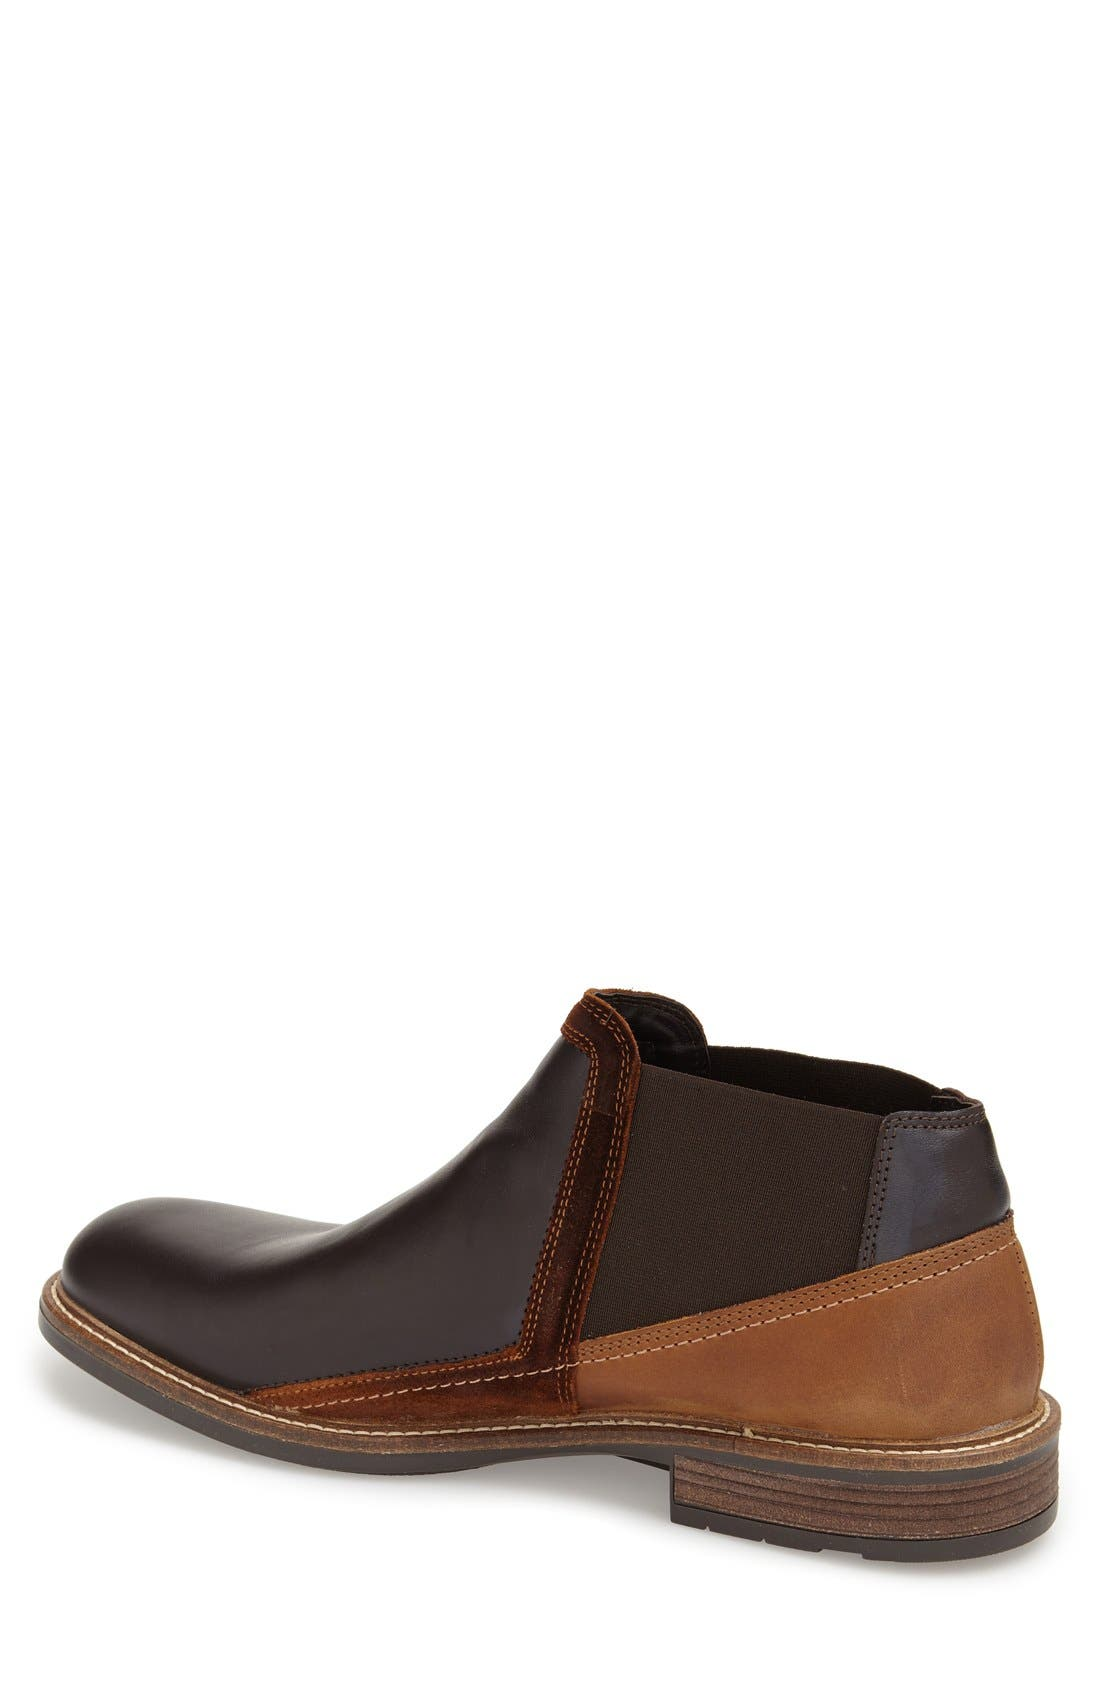 Business Chelsea Boot,                             Alternate thumbnail 2, color,                             ROAST/SADDLE/ SEAL BROWN SUEDE